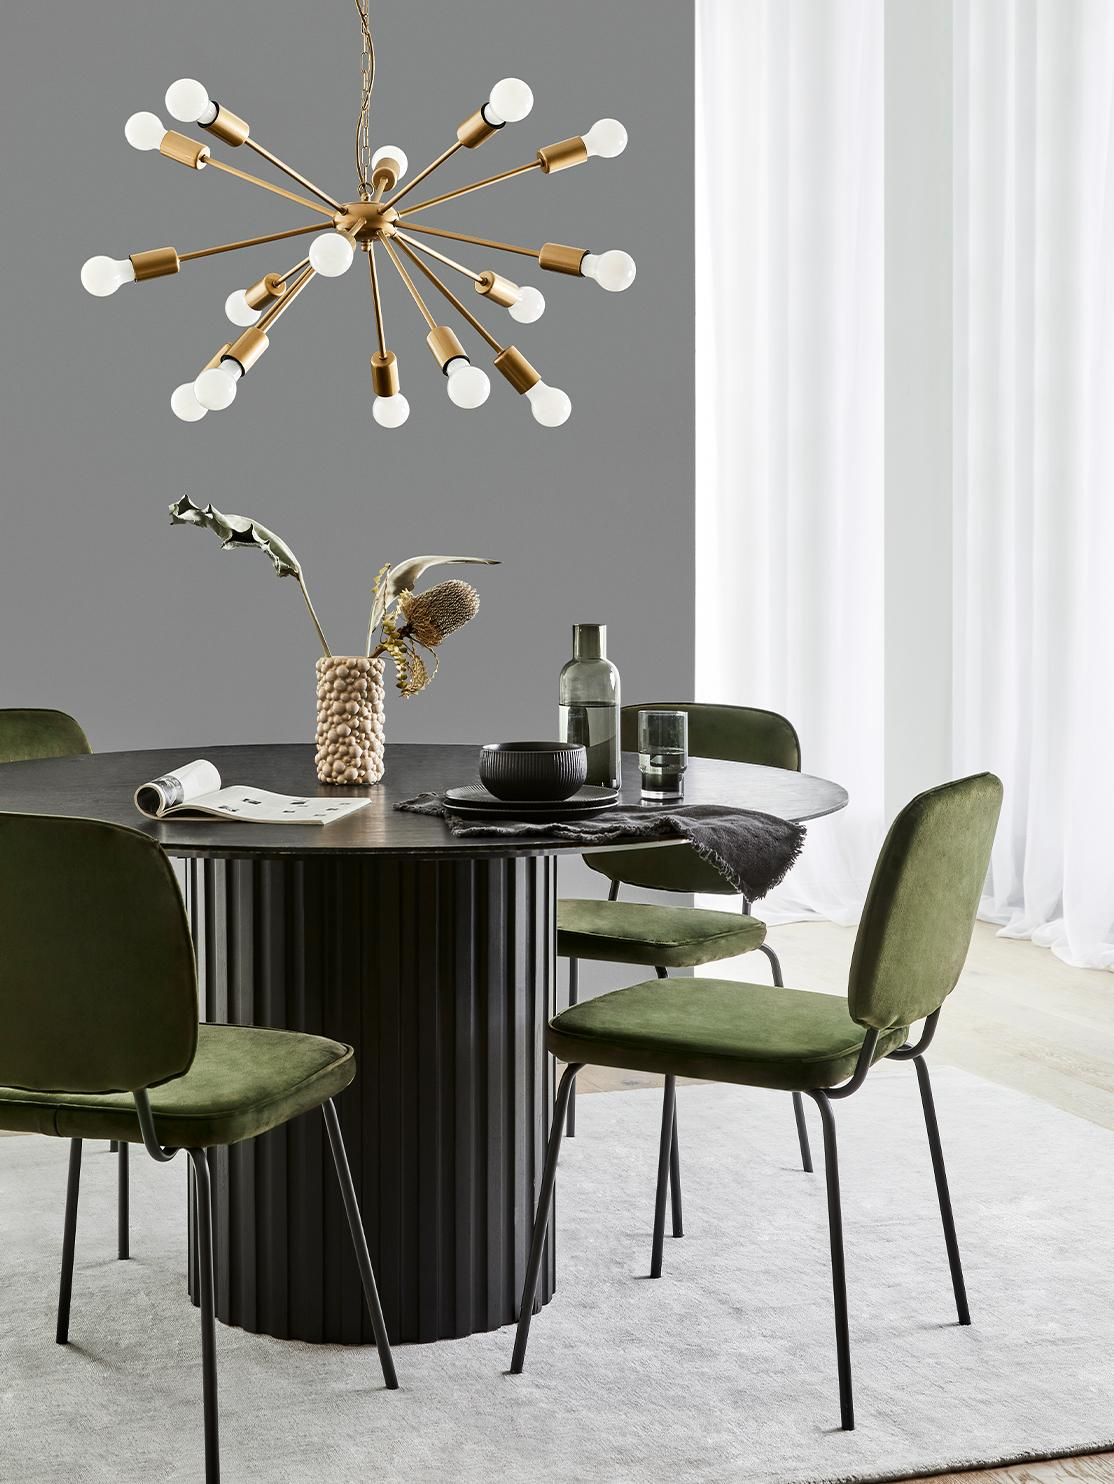 Une table stylée